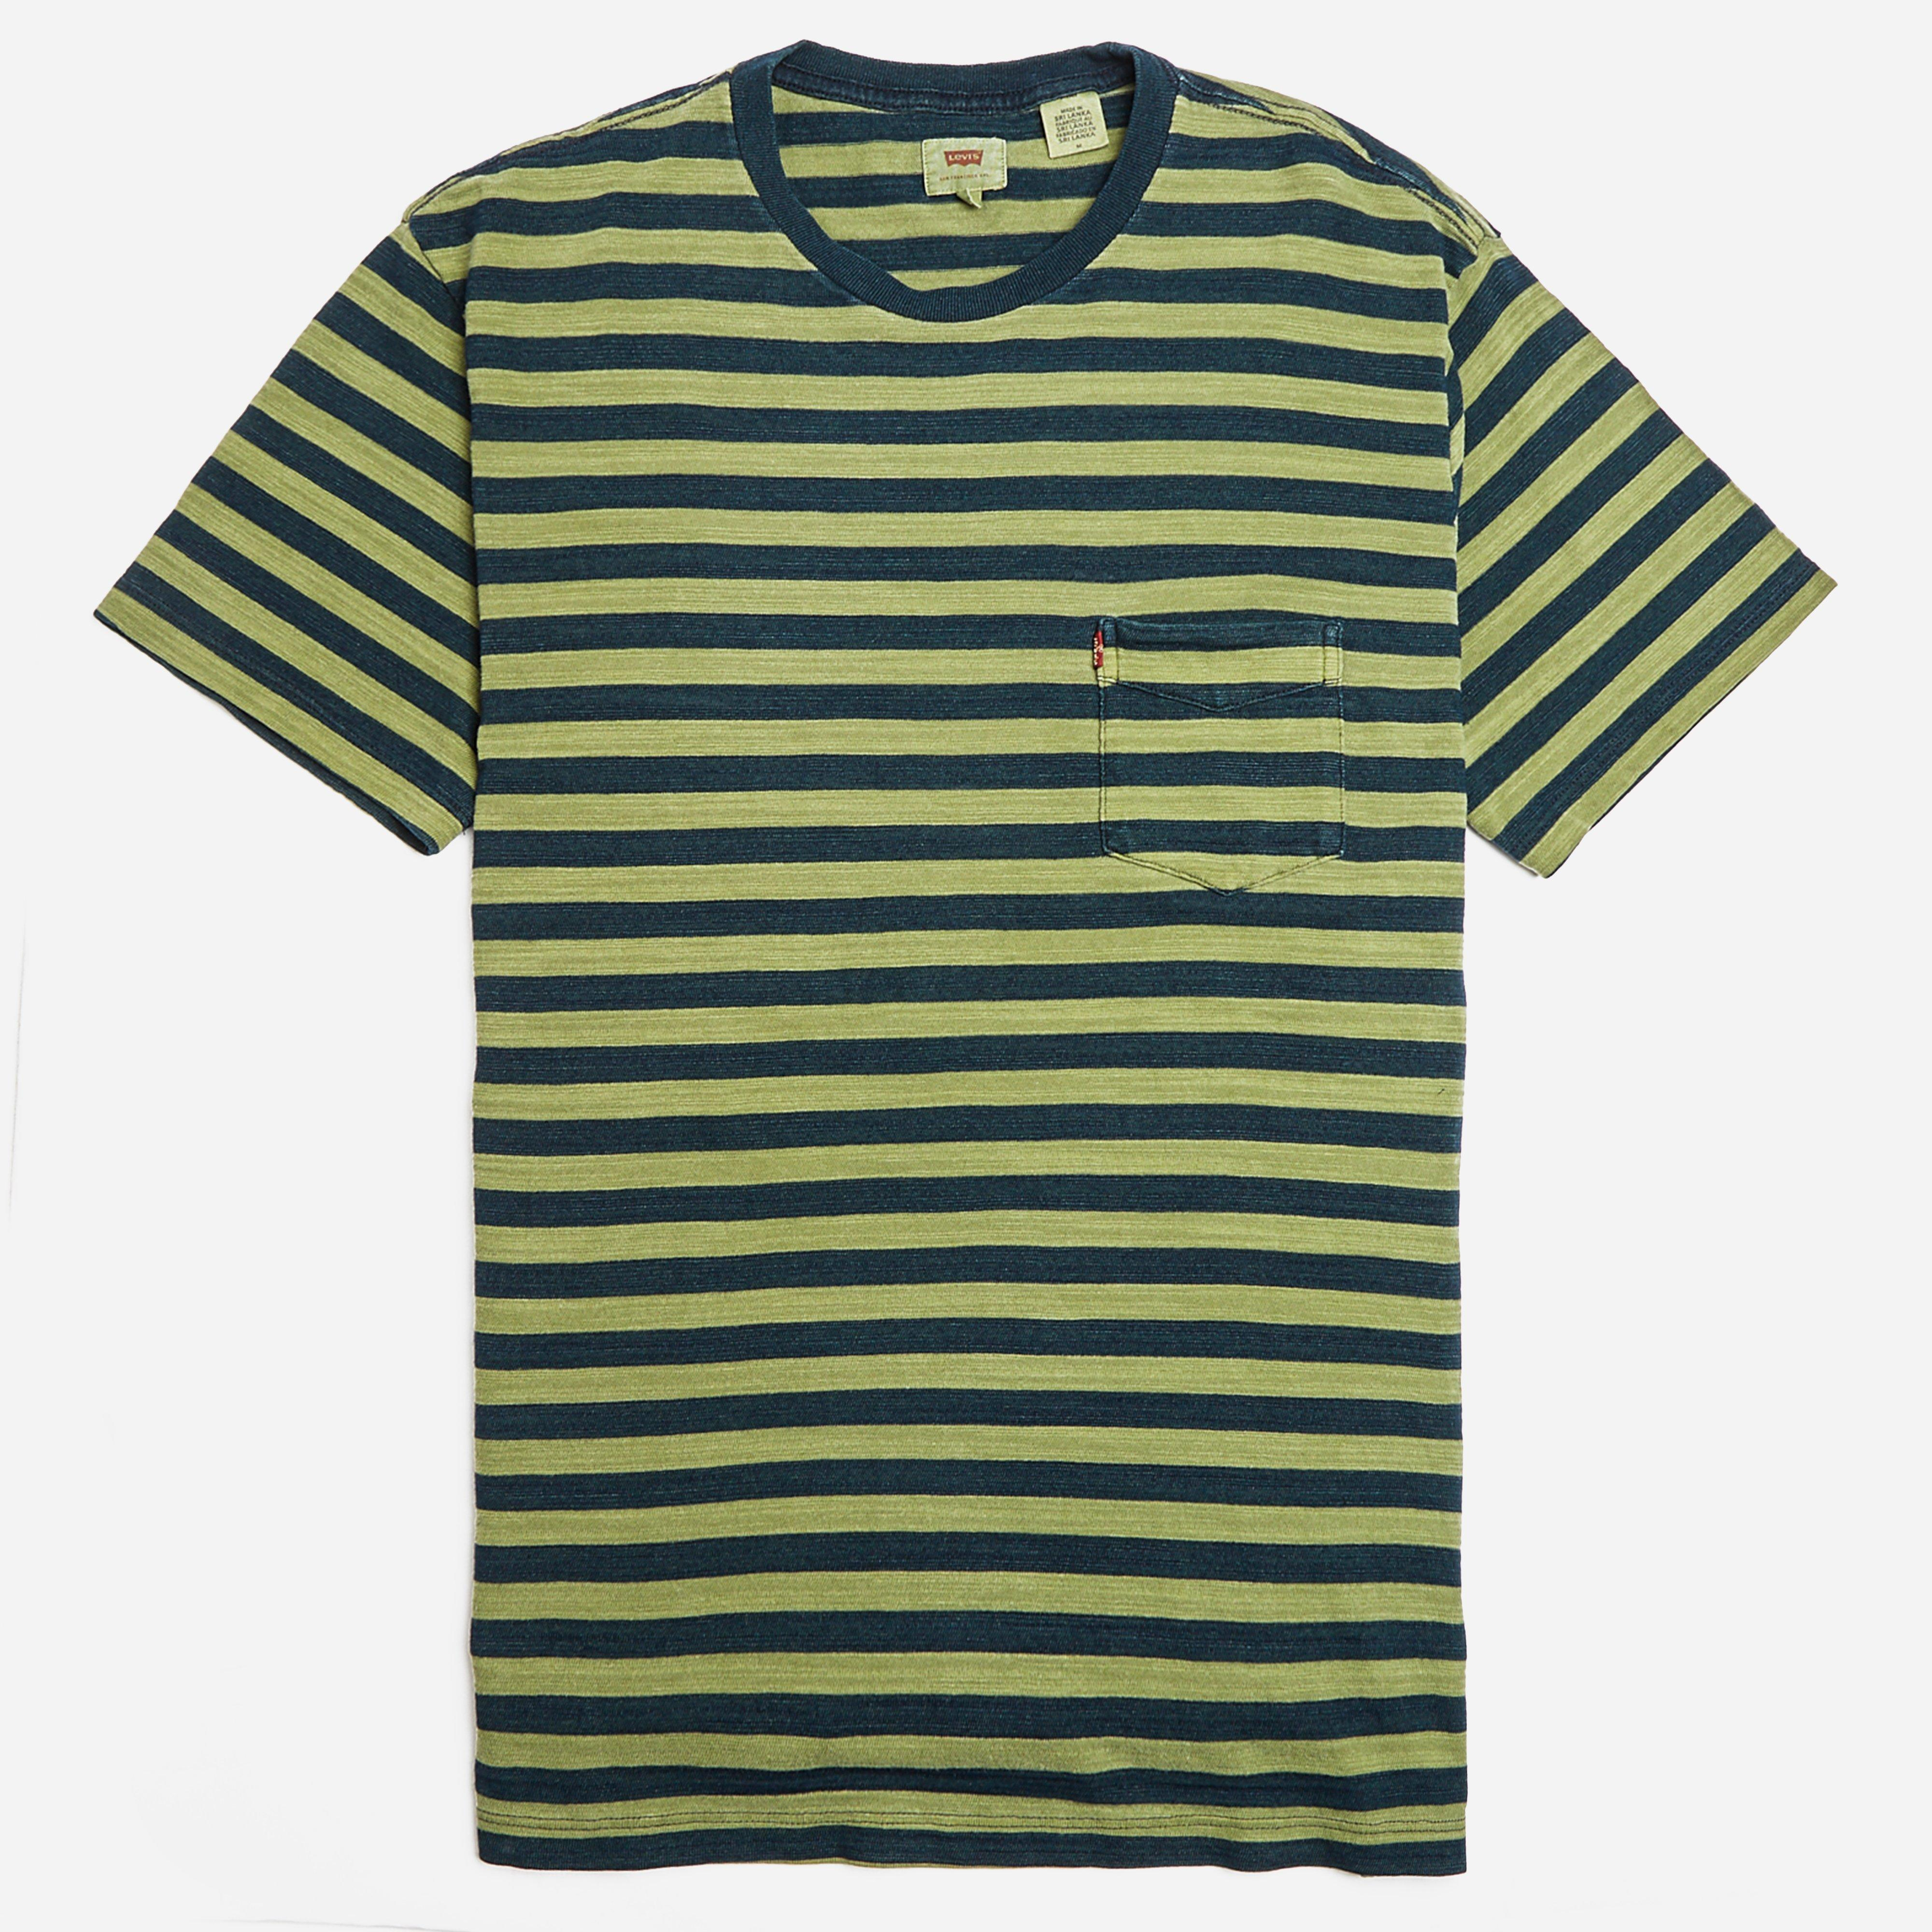 Levis Vintage Setin Sunset Half Stripe Pocket T-shirt